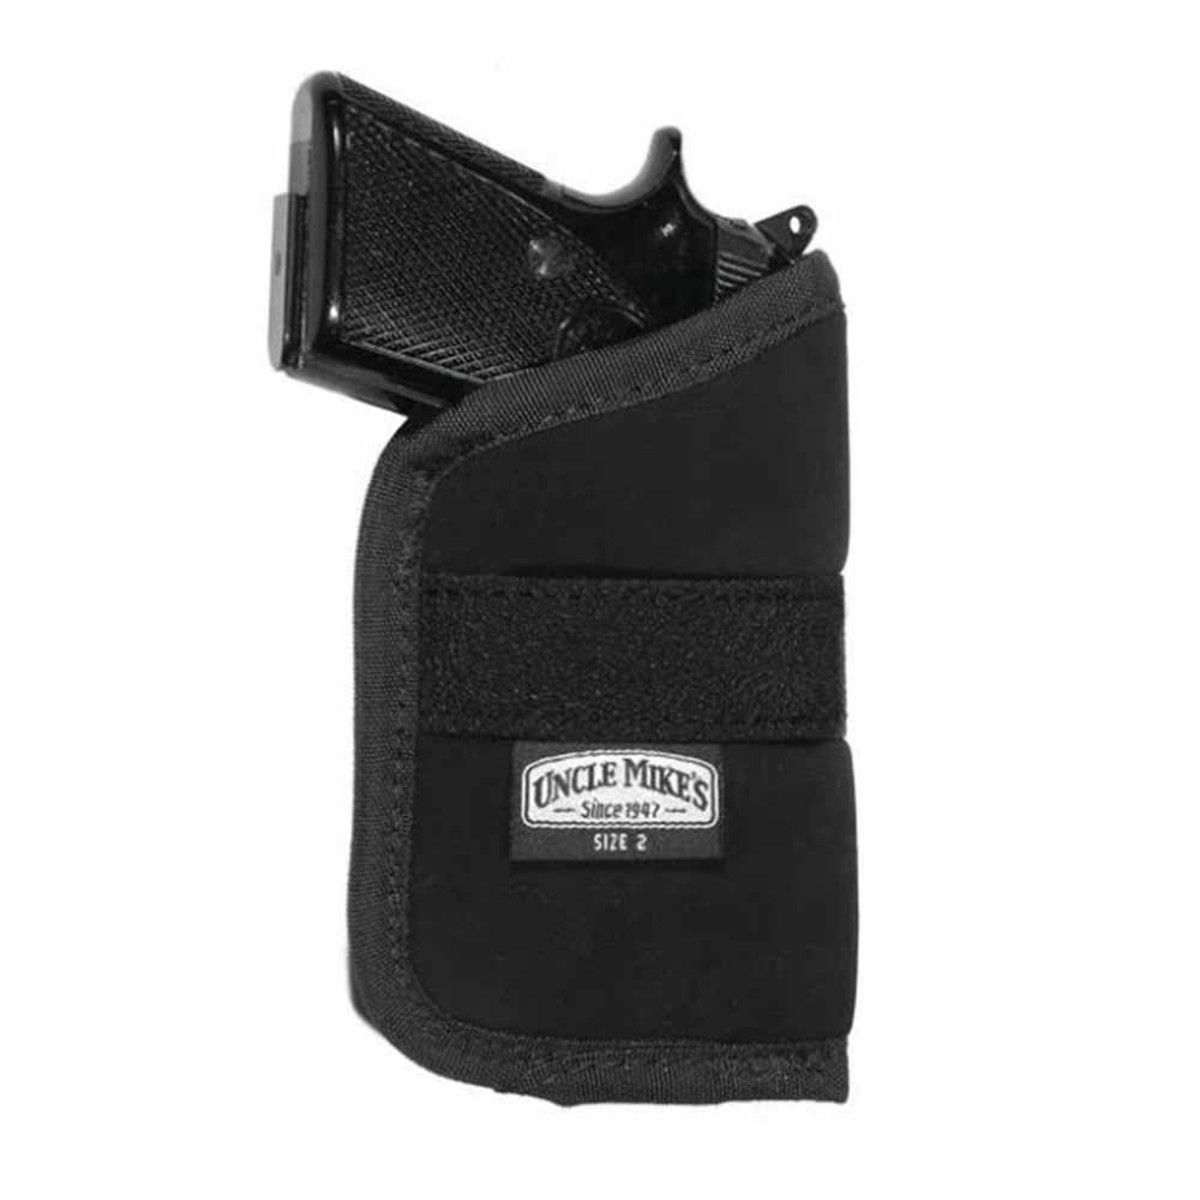 Uncle Mike's Inside-The-Pocket Holster_1.jpg